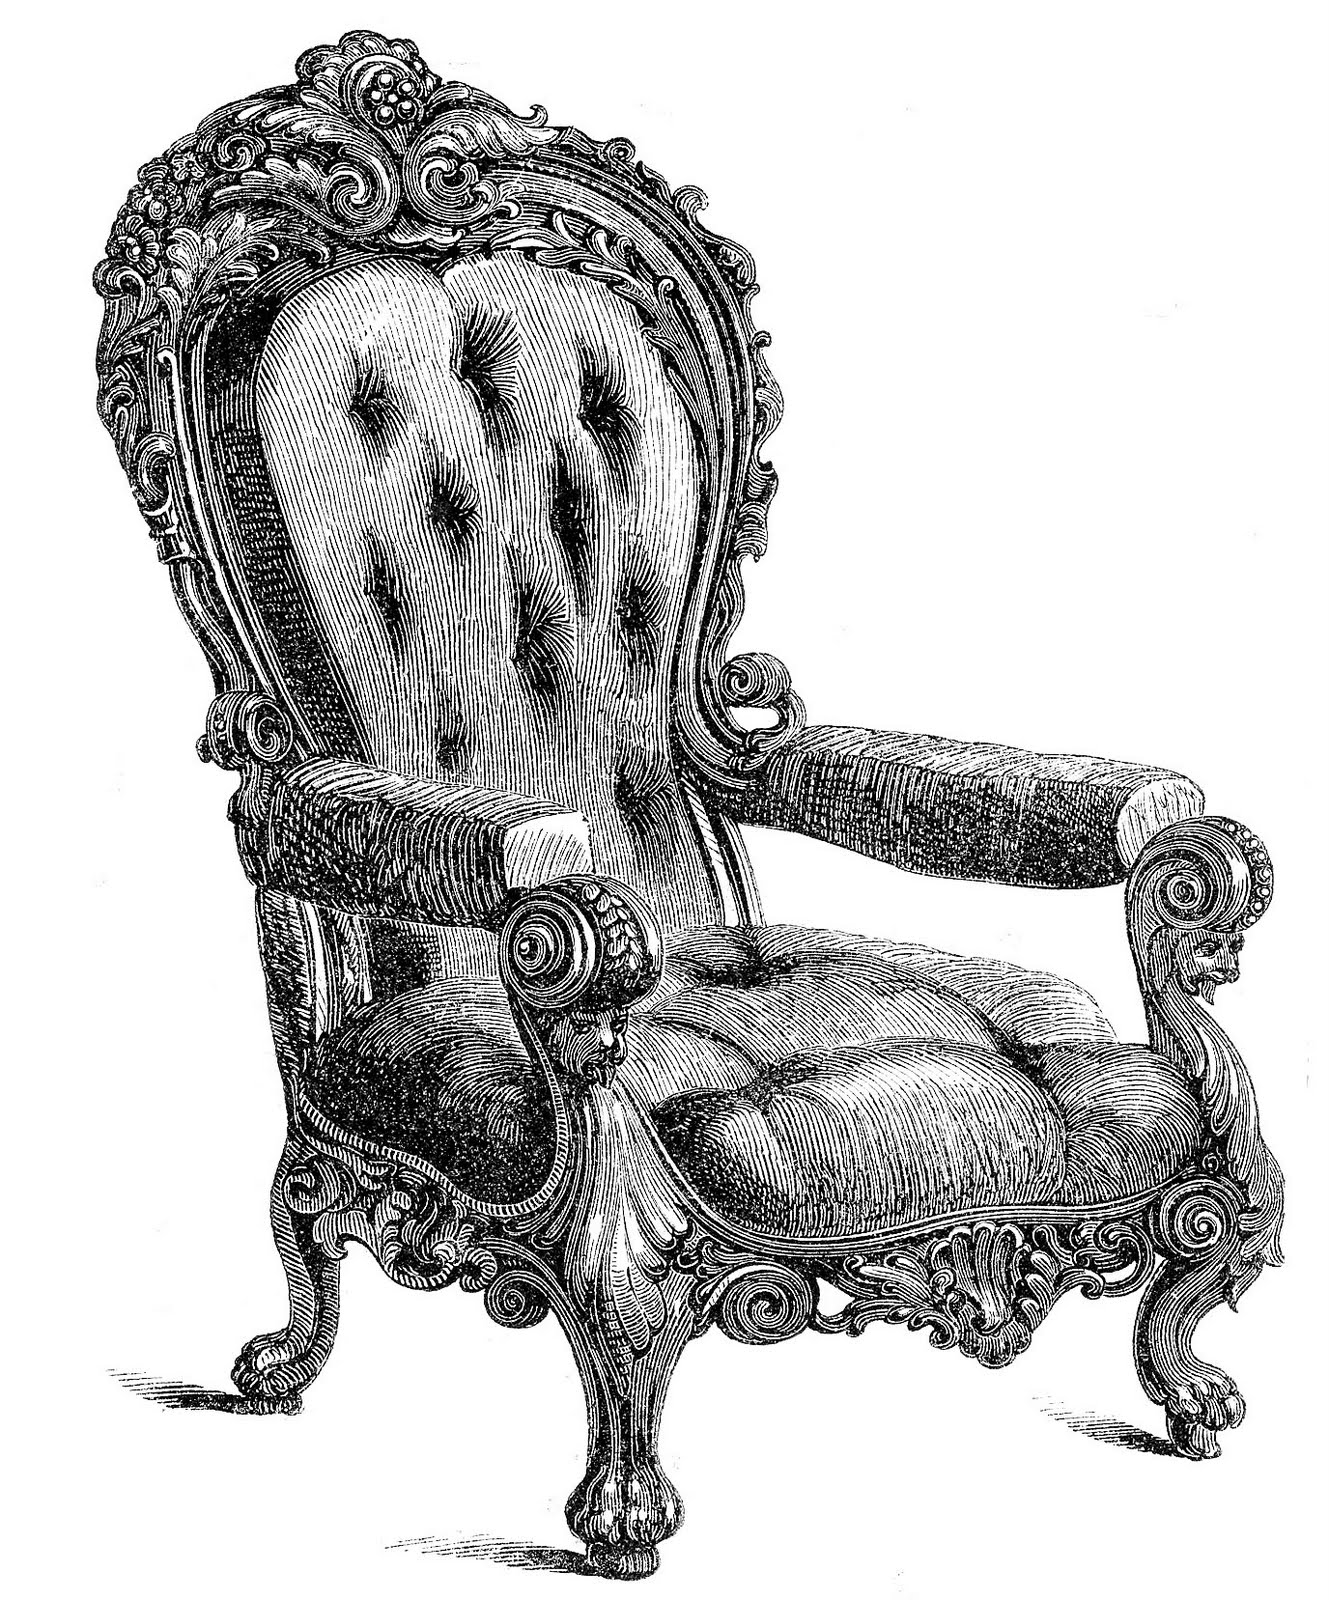 hight resolution of today i m sharing these 2 clip art images of some very ornate chairs the chairs were made in vienna they come from an old 1850 s catalog